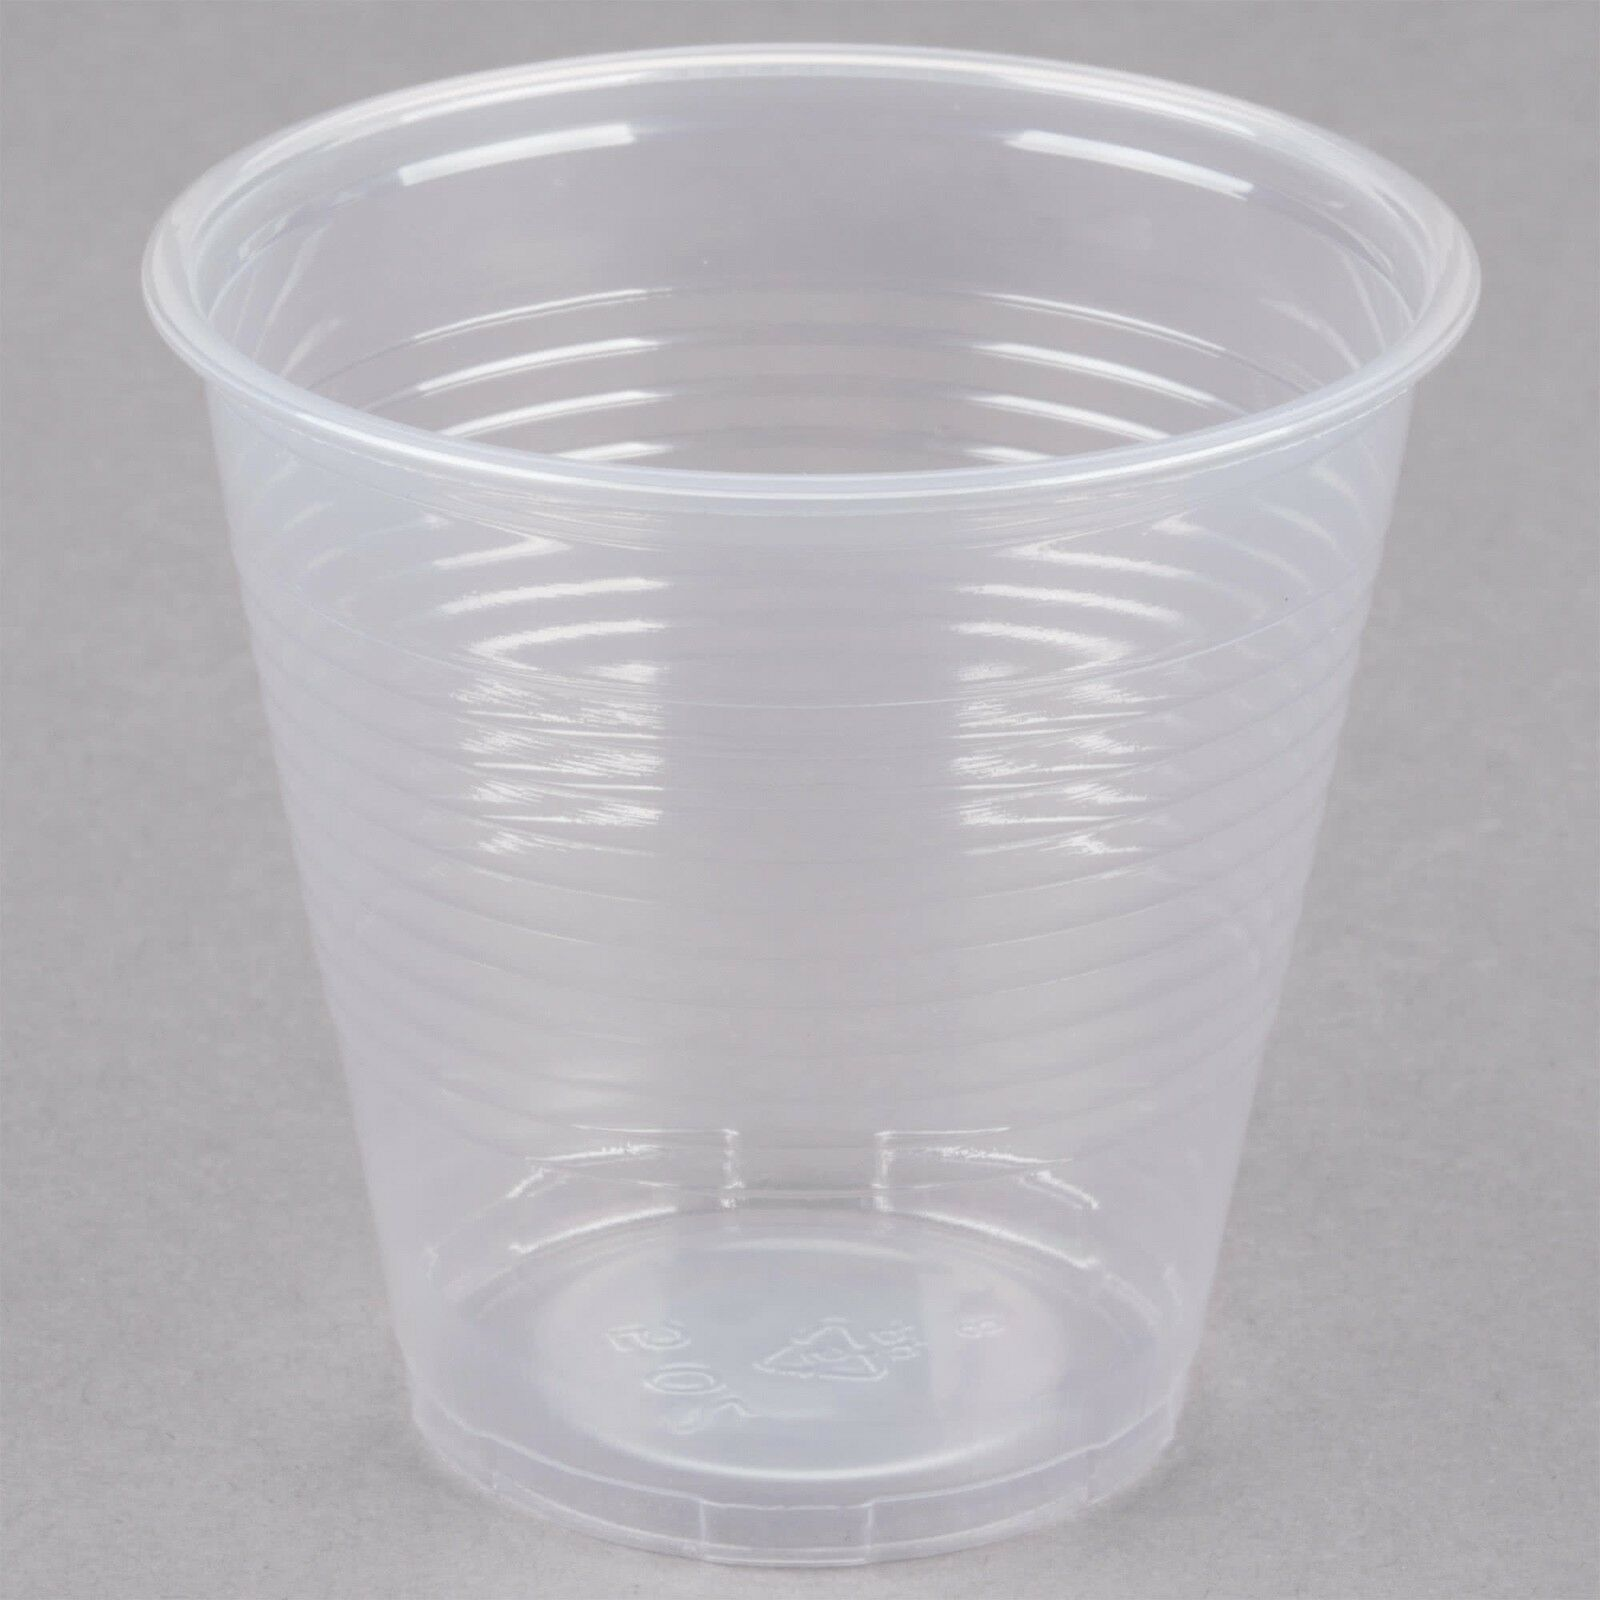 Carton of 2500  Disposable Plastic Cups 5oz Cafeteria Party Cup Translucent